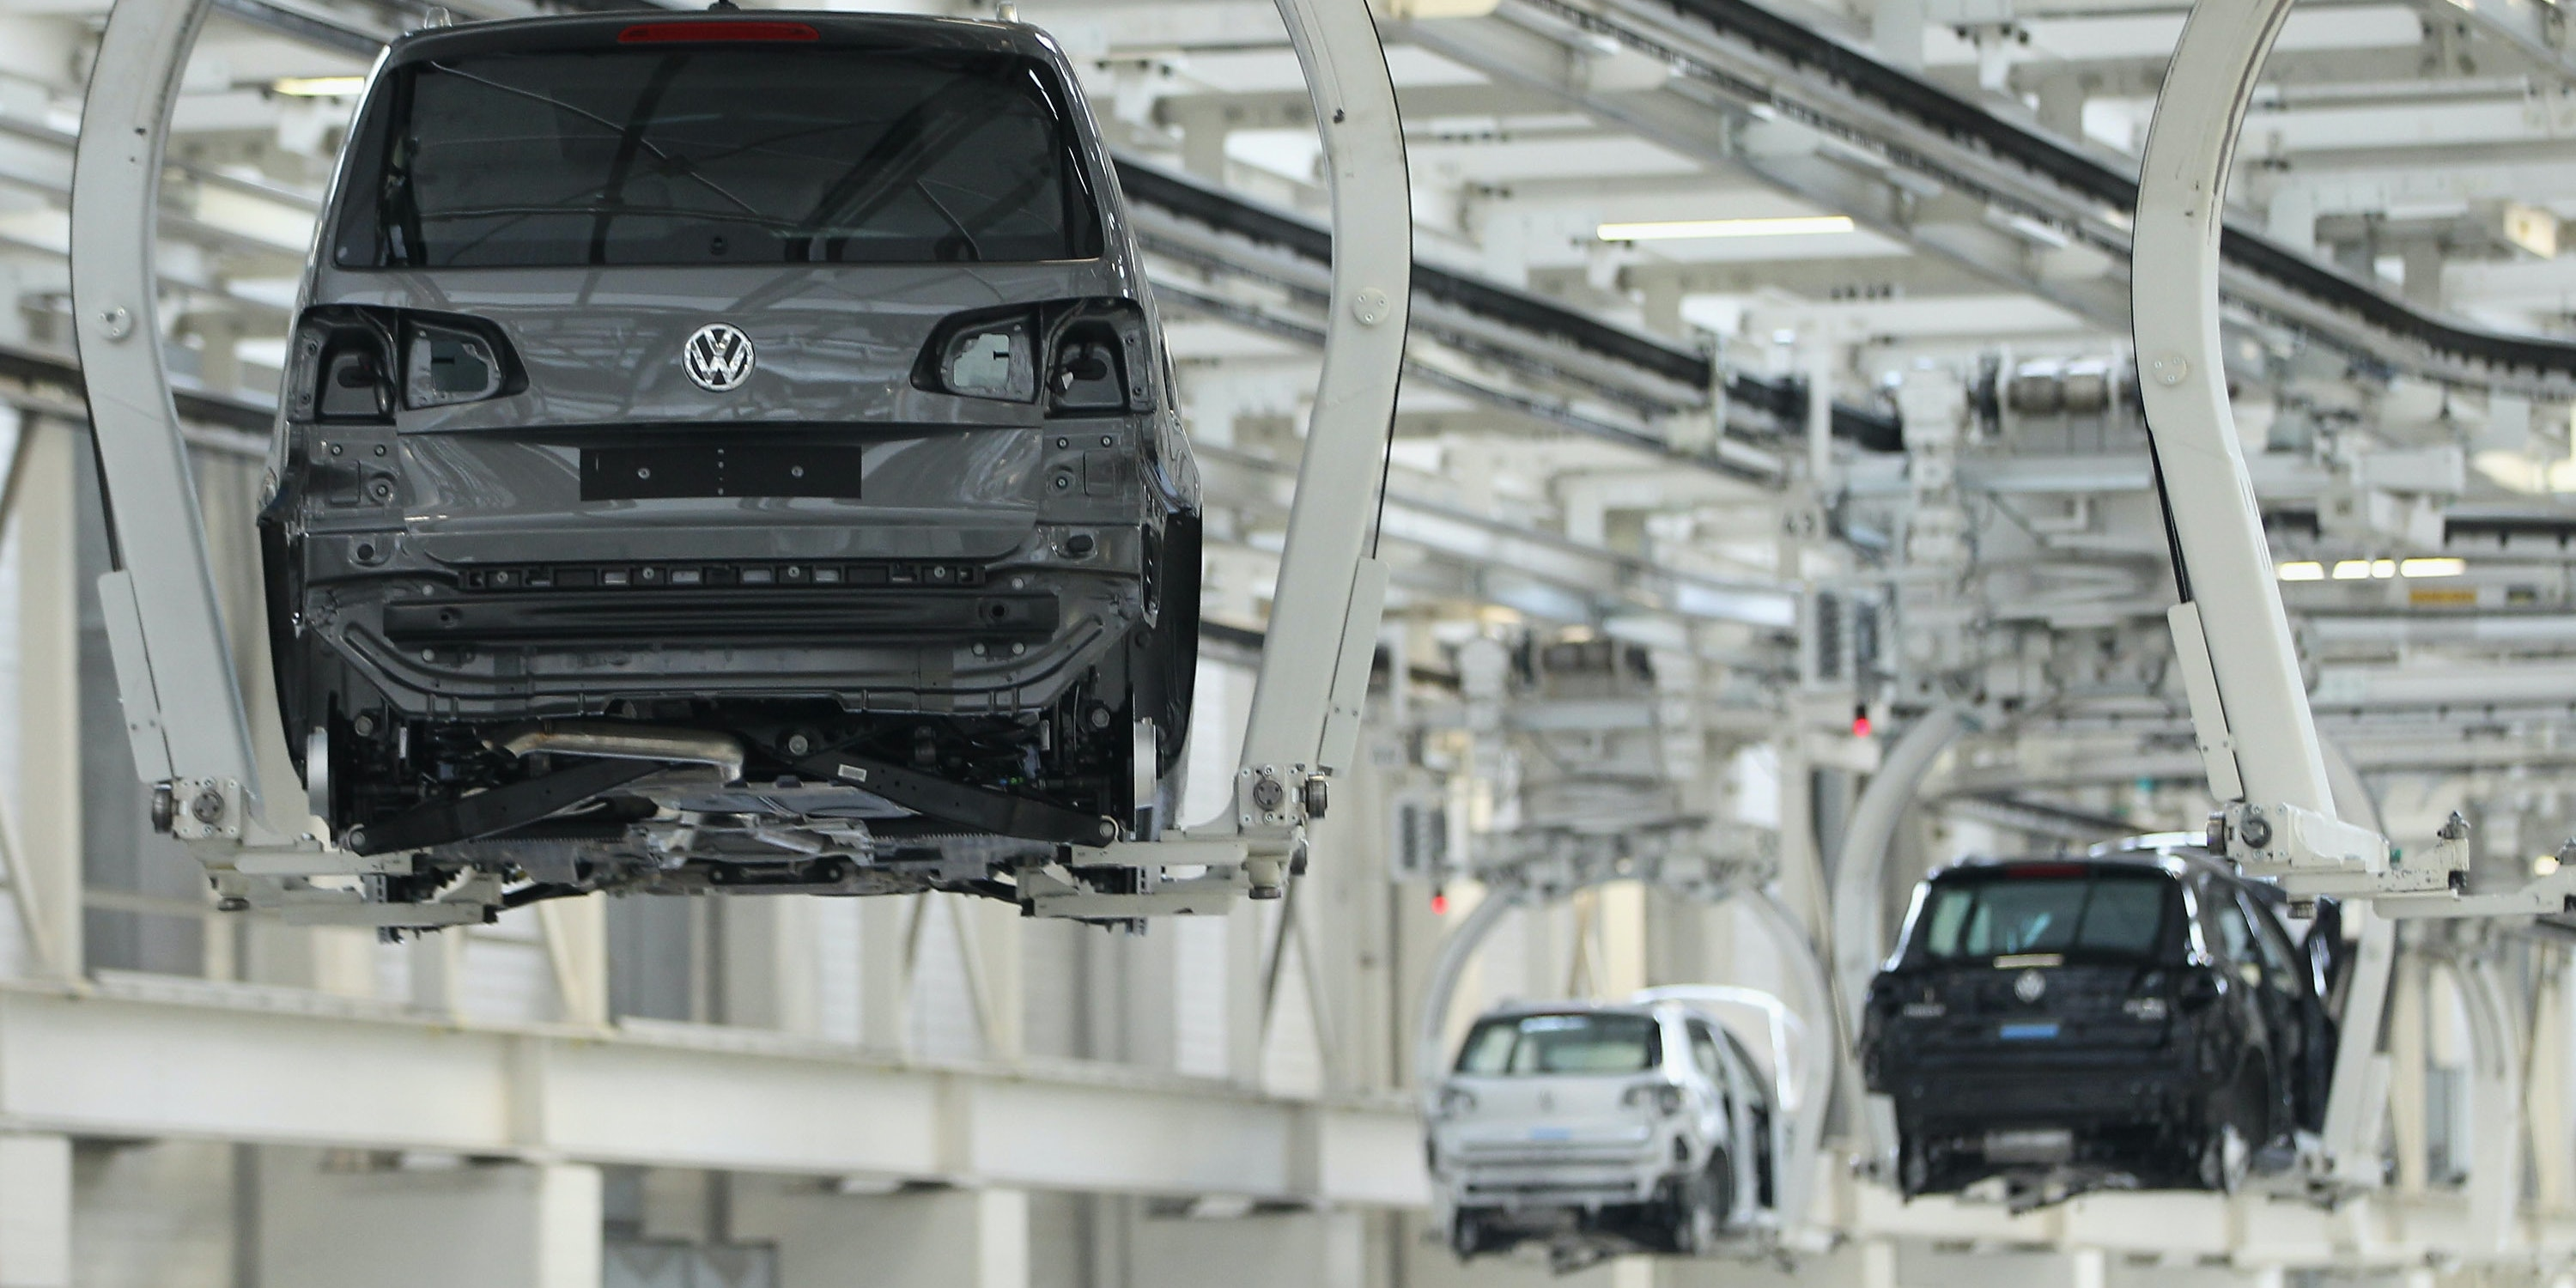 Automated conveyors move partially-assembled Volkswagen Touran and Tiguan cars at the Volkswagen factory on March 7, 2012 in Wolfsburg, Germany. In 2011 Volkswagen achieved record results, with profits of EUR 15.8 million and production of over 8 million cars worldwide.